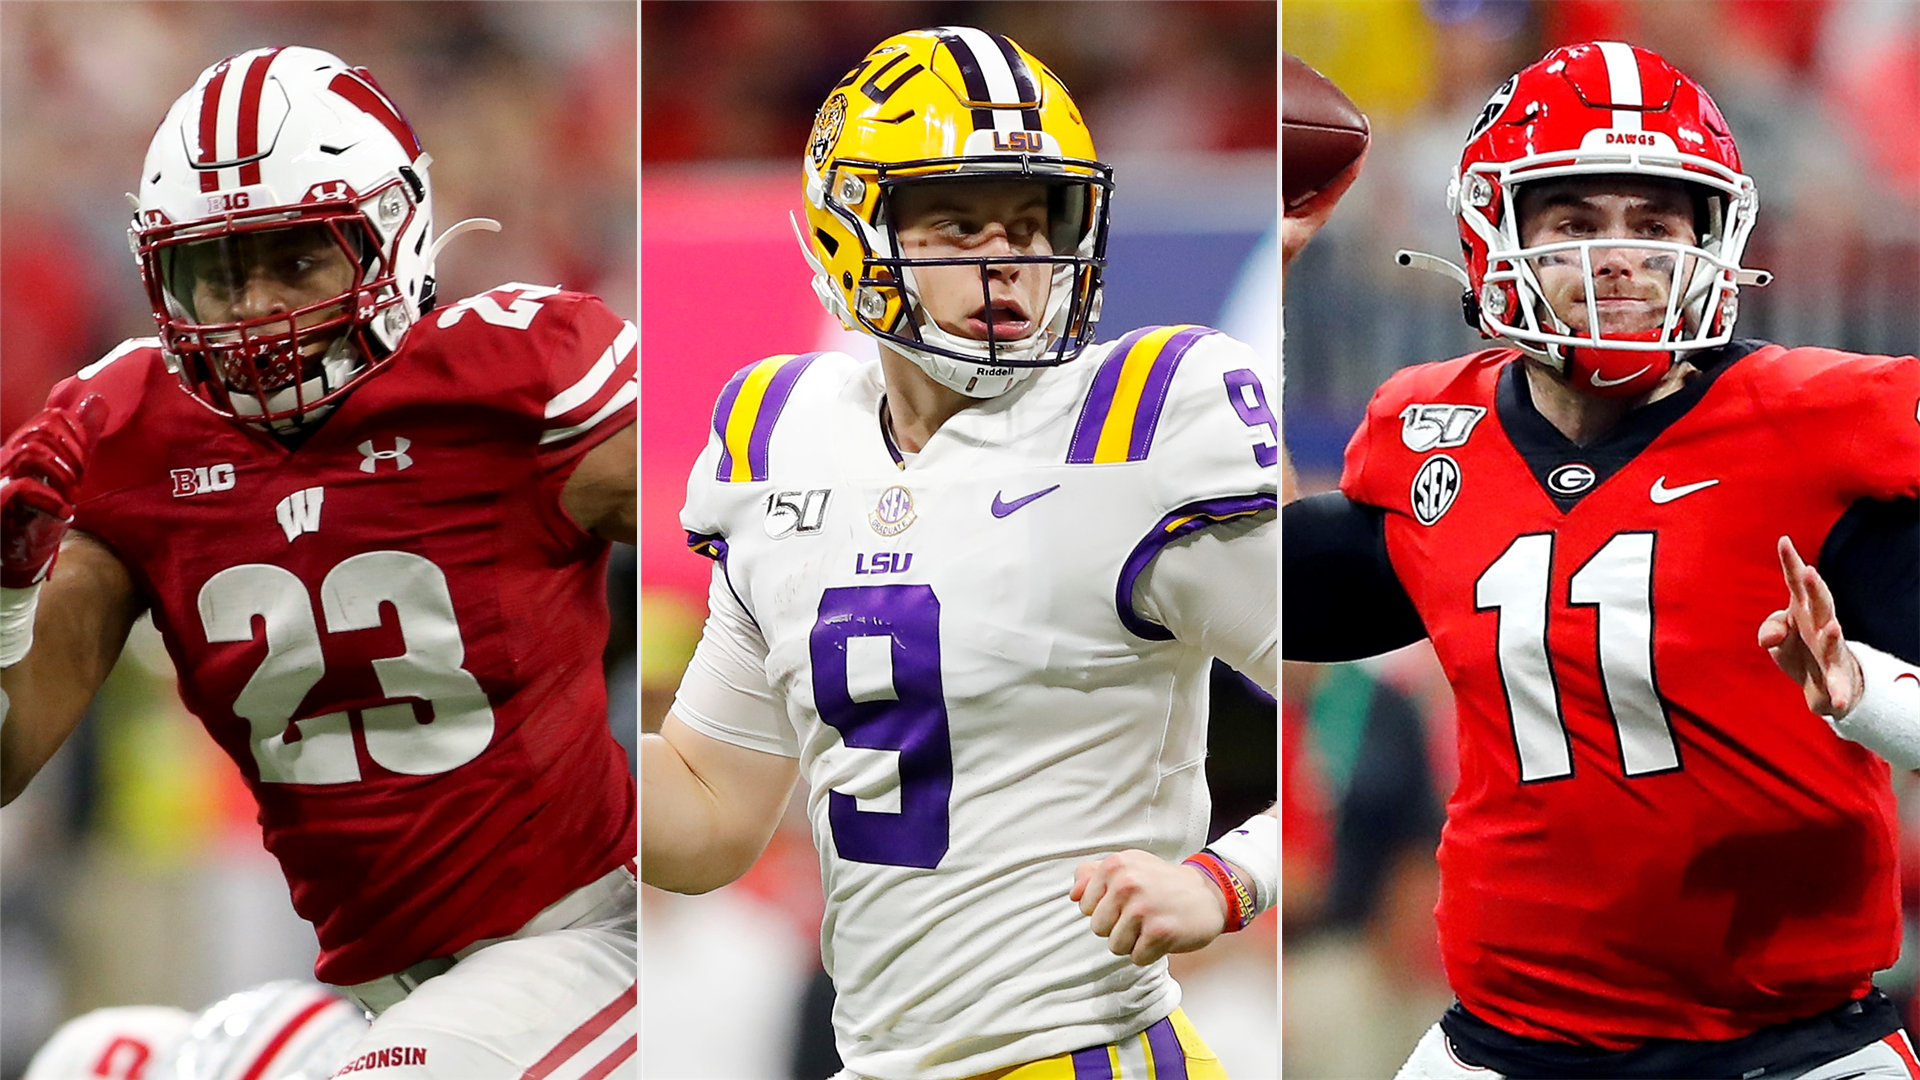 A complete betting guide to college football's New Year's Six bowl games in 2019-20